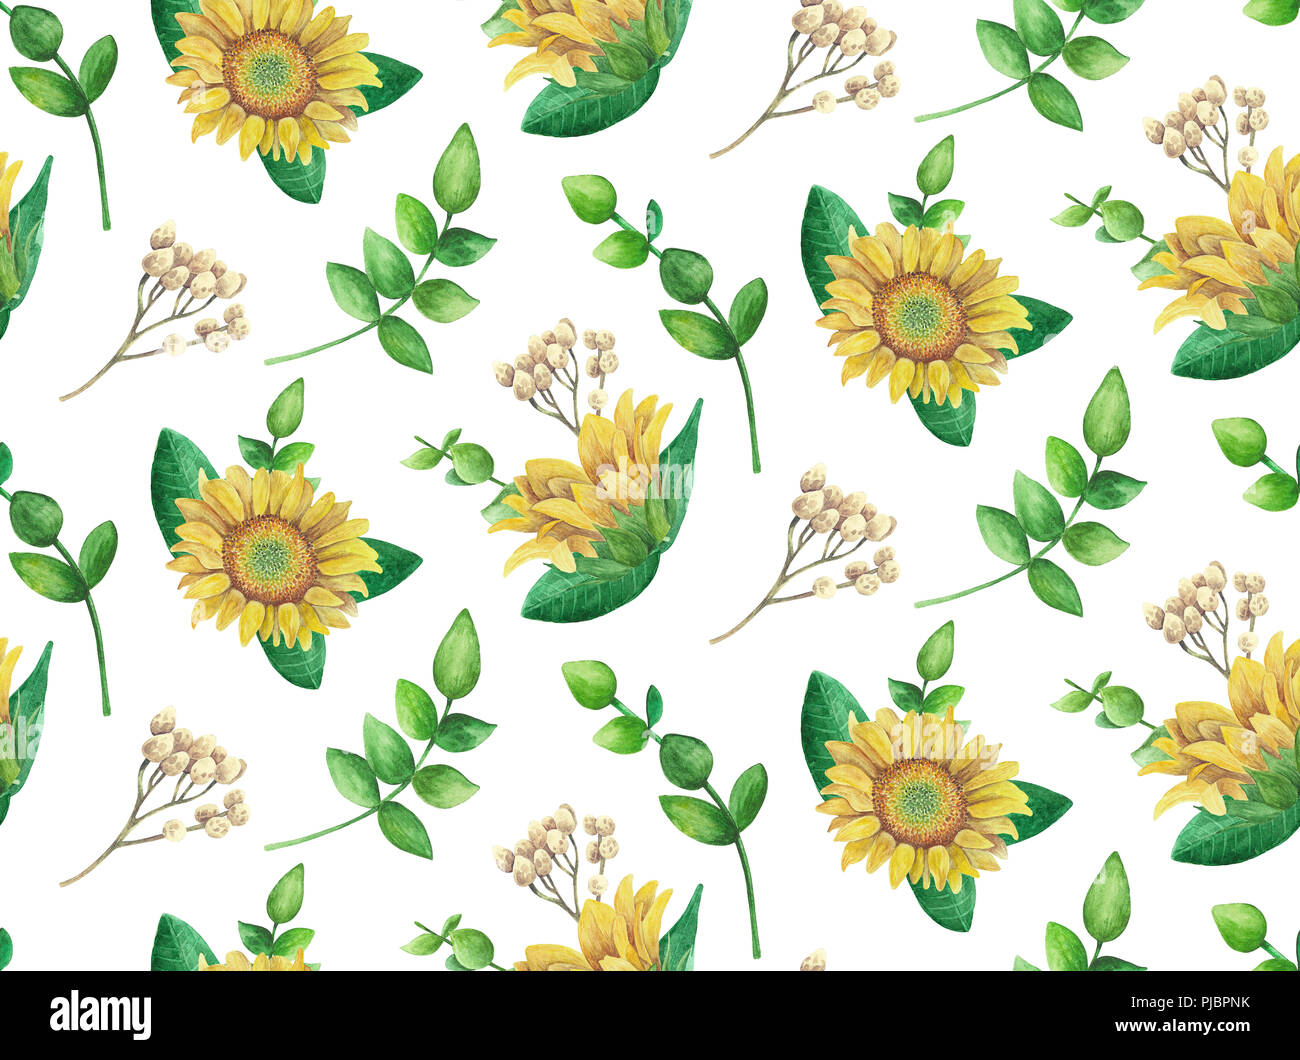 Sunflowers pattern. Watercolor rustic flowers. Country floral - Stock Image